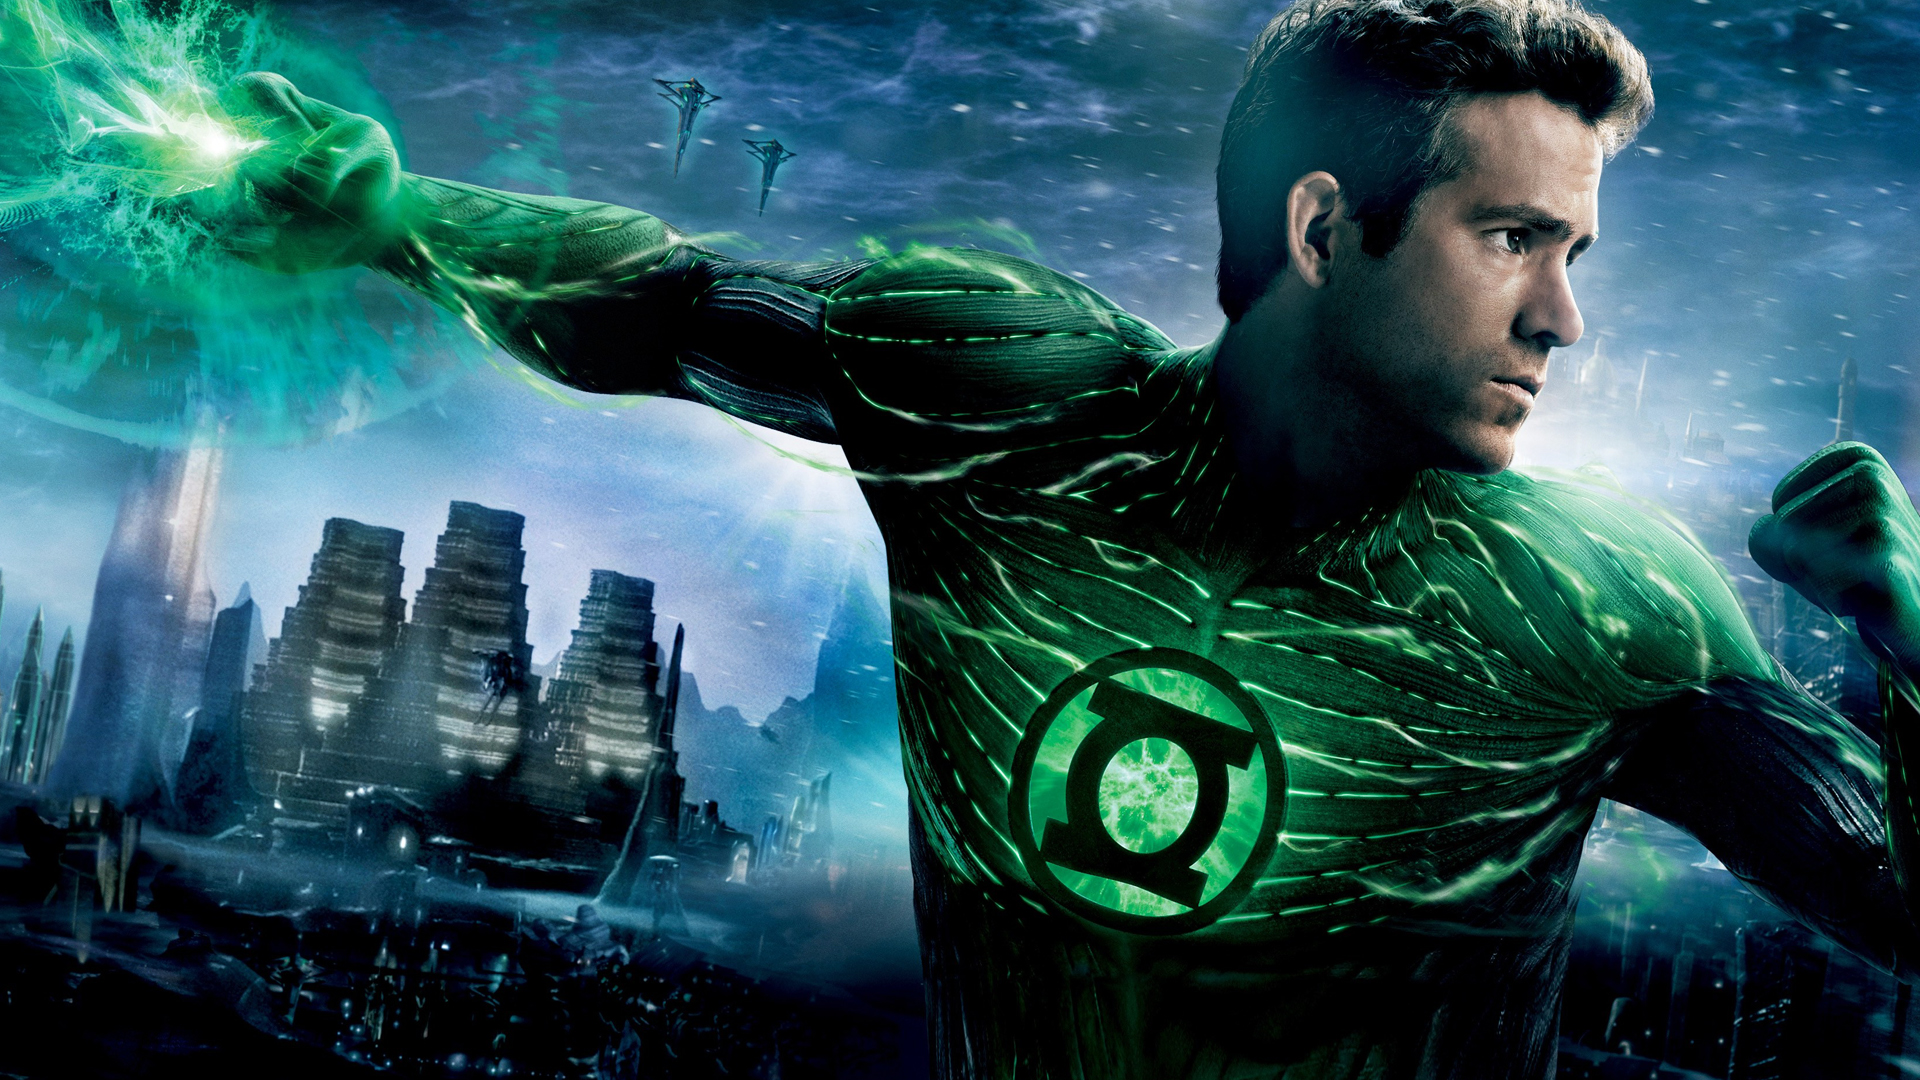 Green Lantern wallpaper 1920x1080 3   hebusorg   High Definition 1920x1080